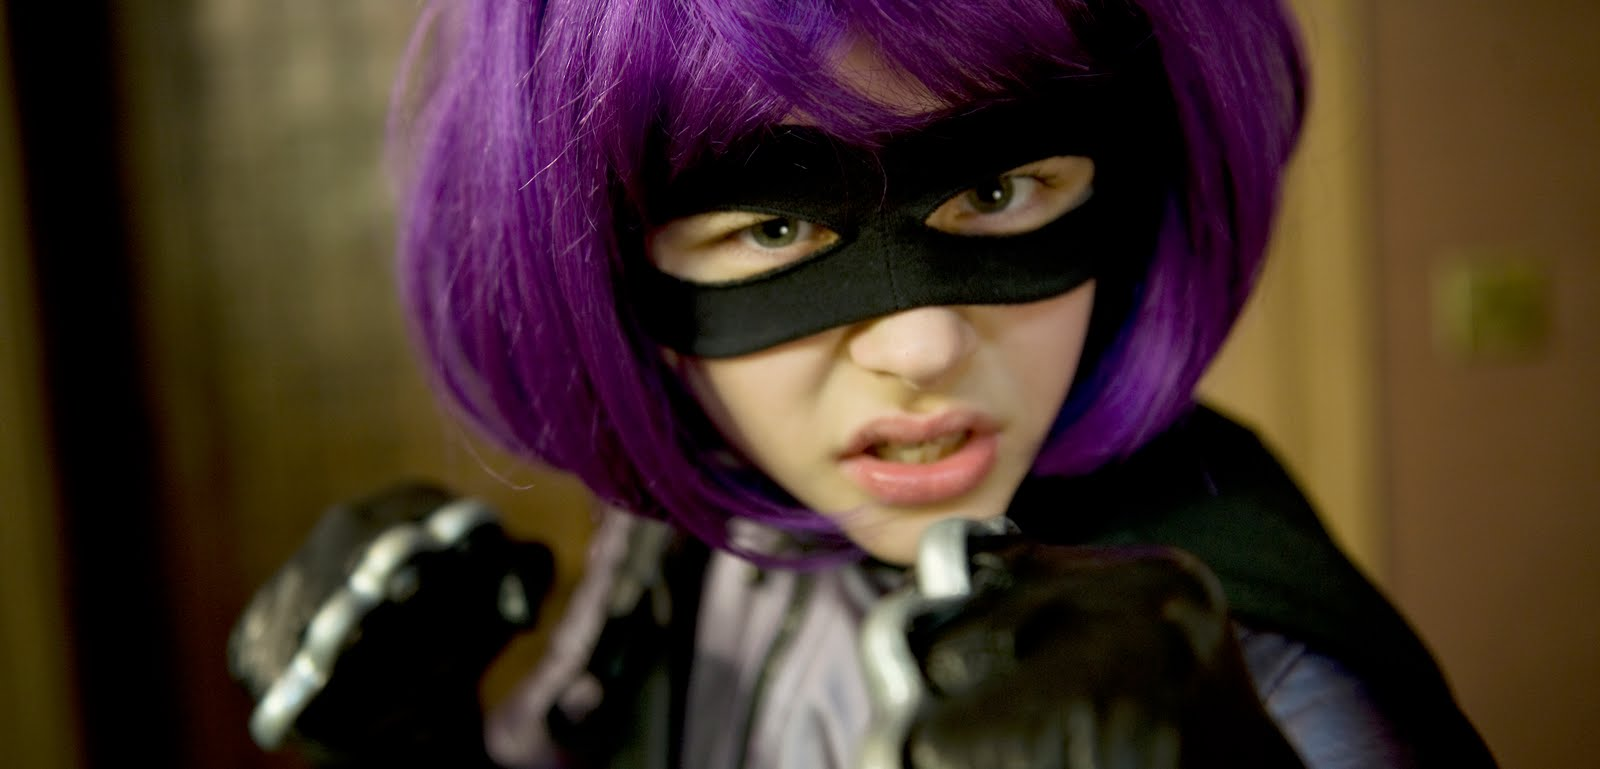 [Image: Hit-girl.jpg]